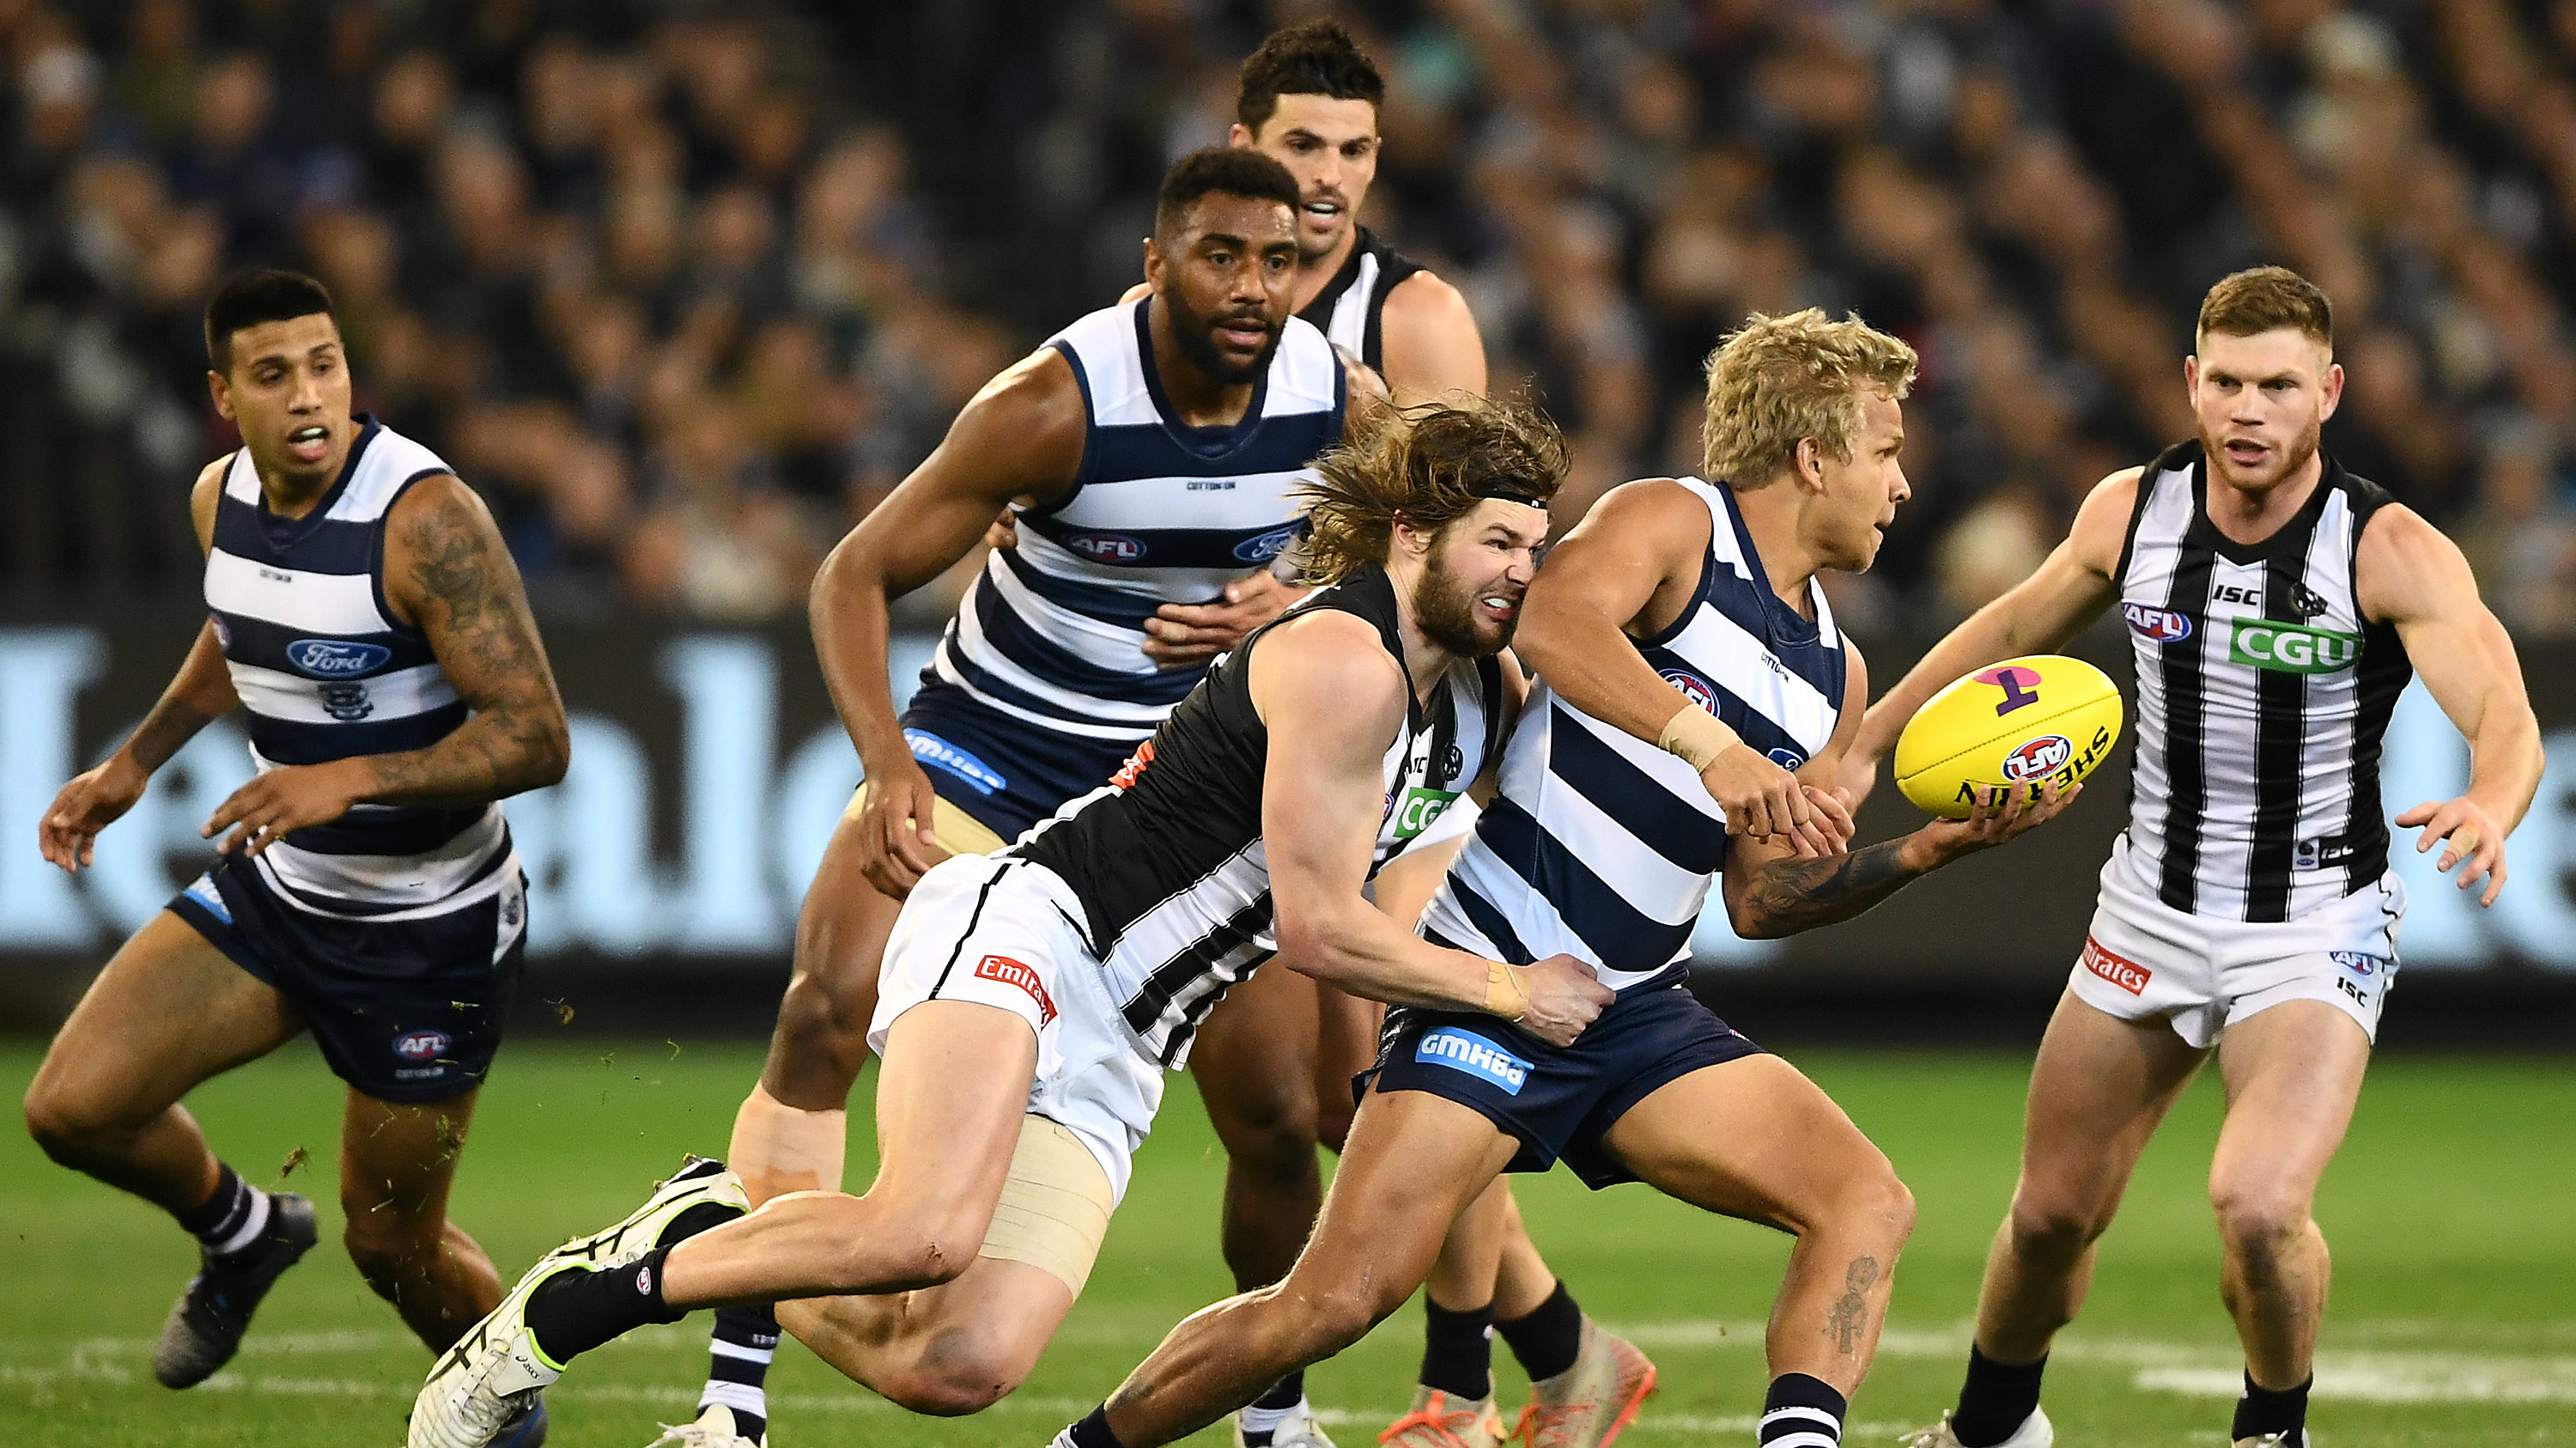 Geelong V Collingwood Jumper Clash Leaves Viewers Frustrated Sporting News Australia